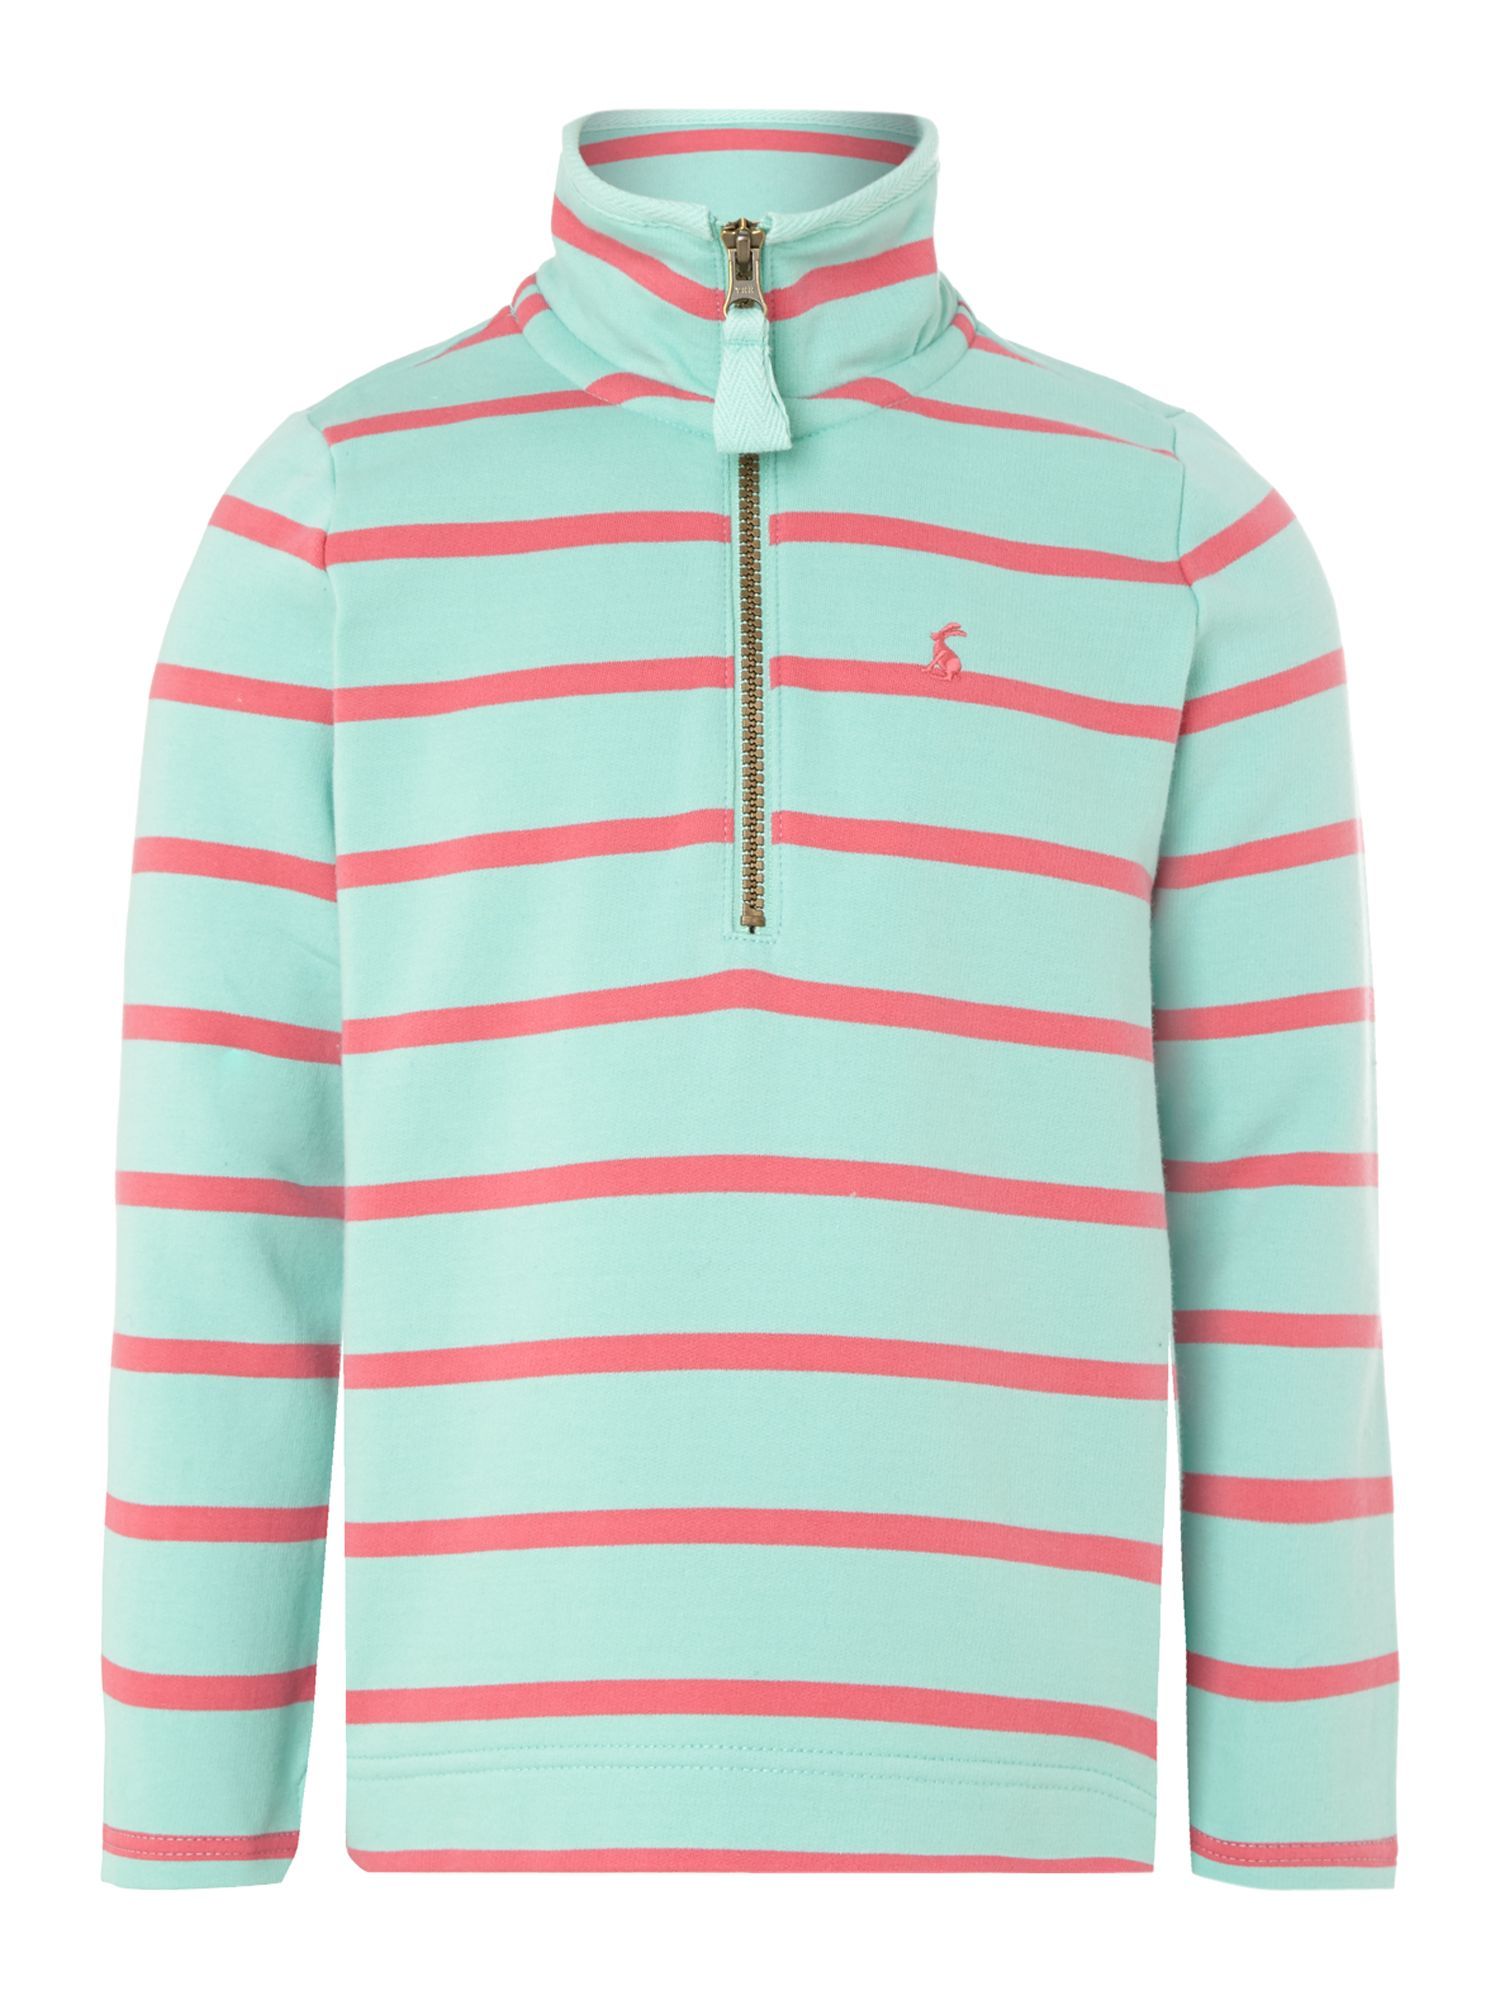 Girls zip up fleece sweater